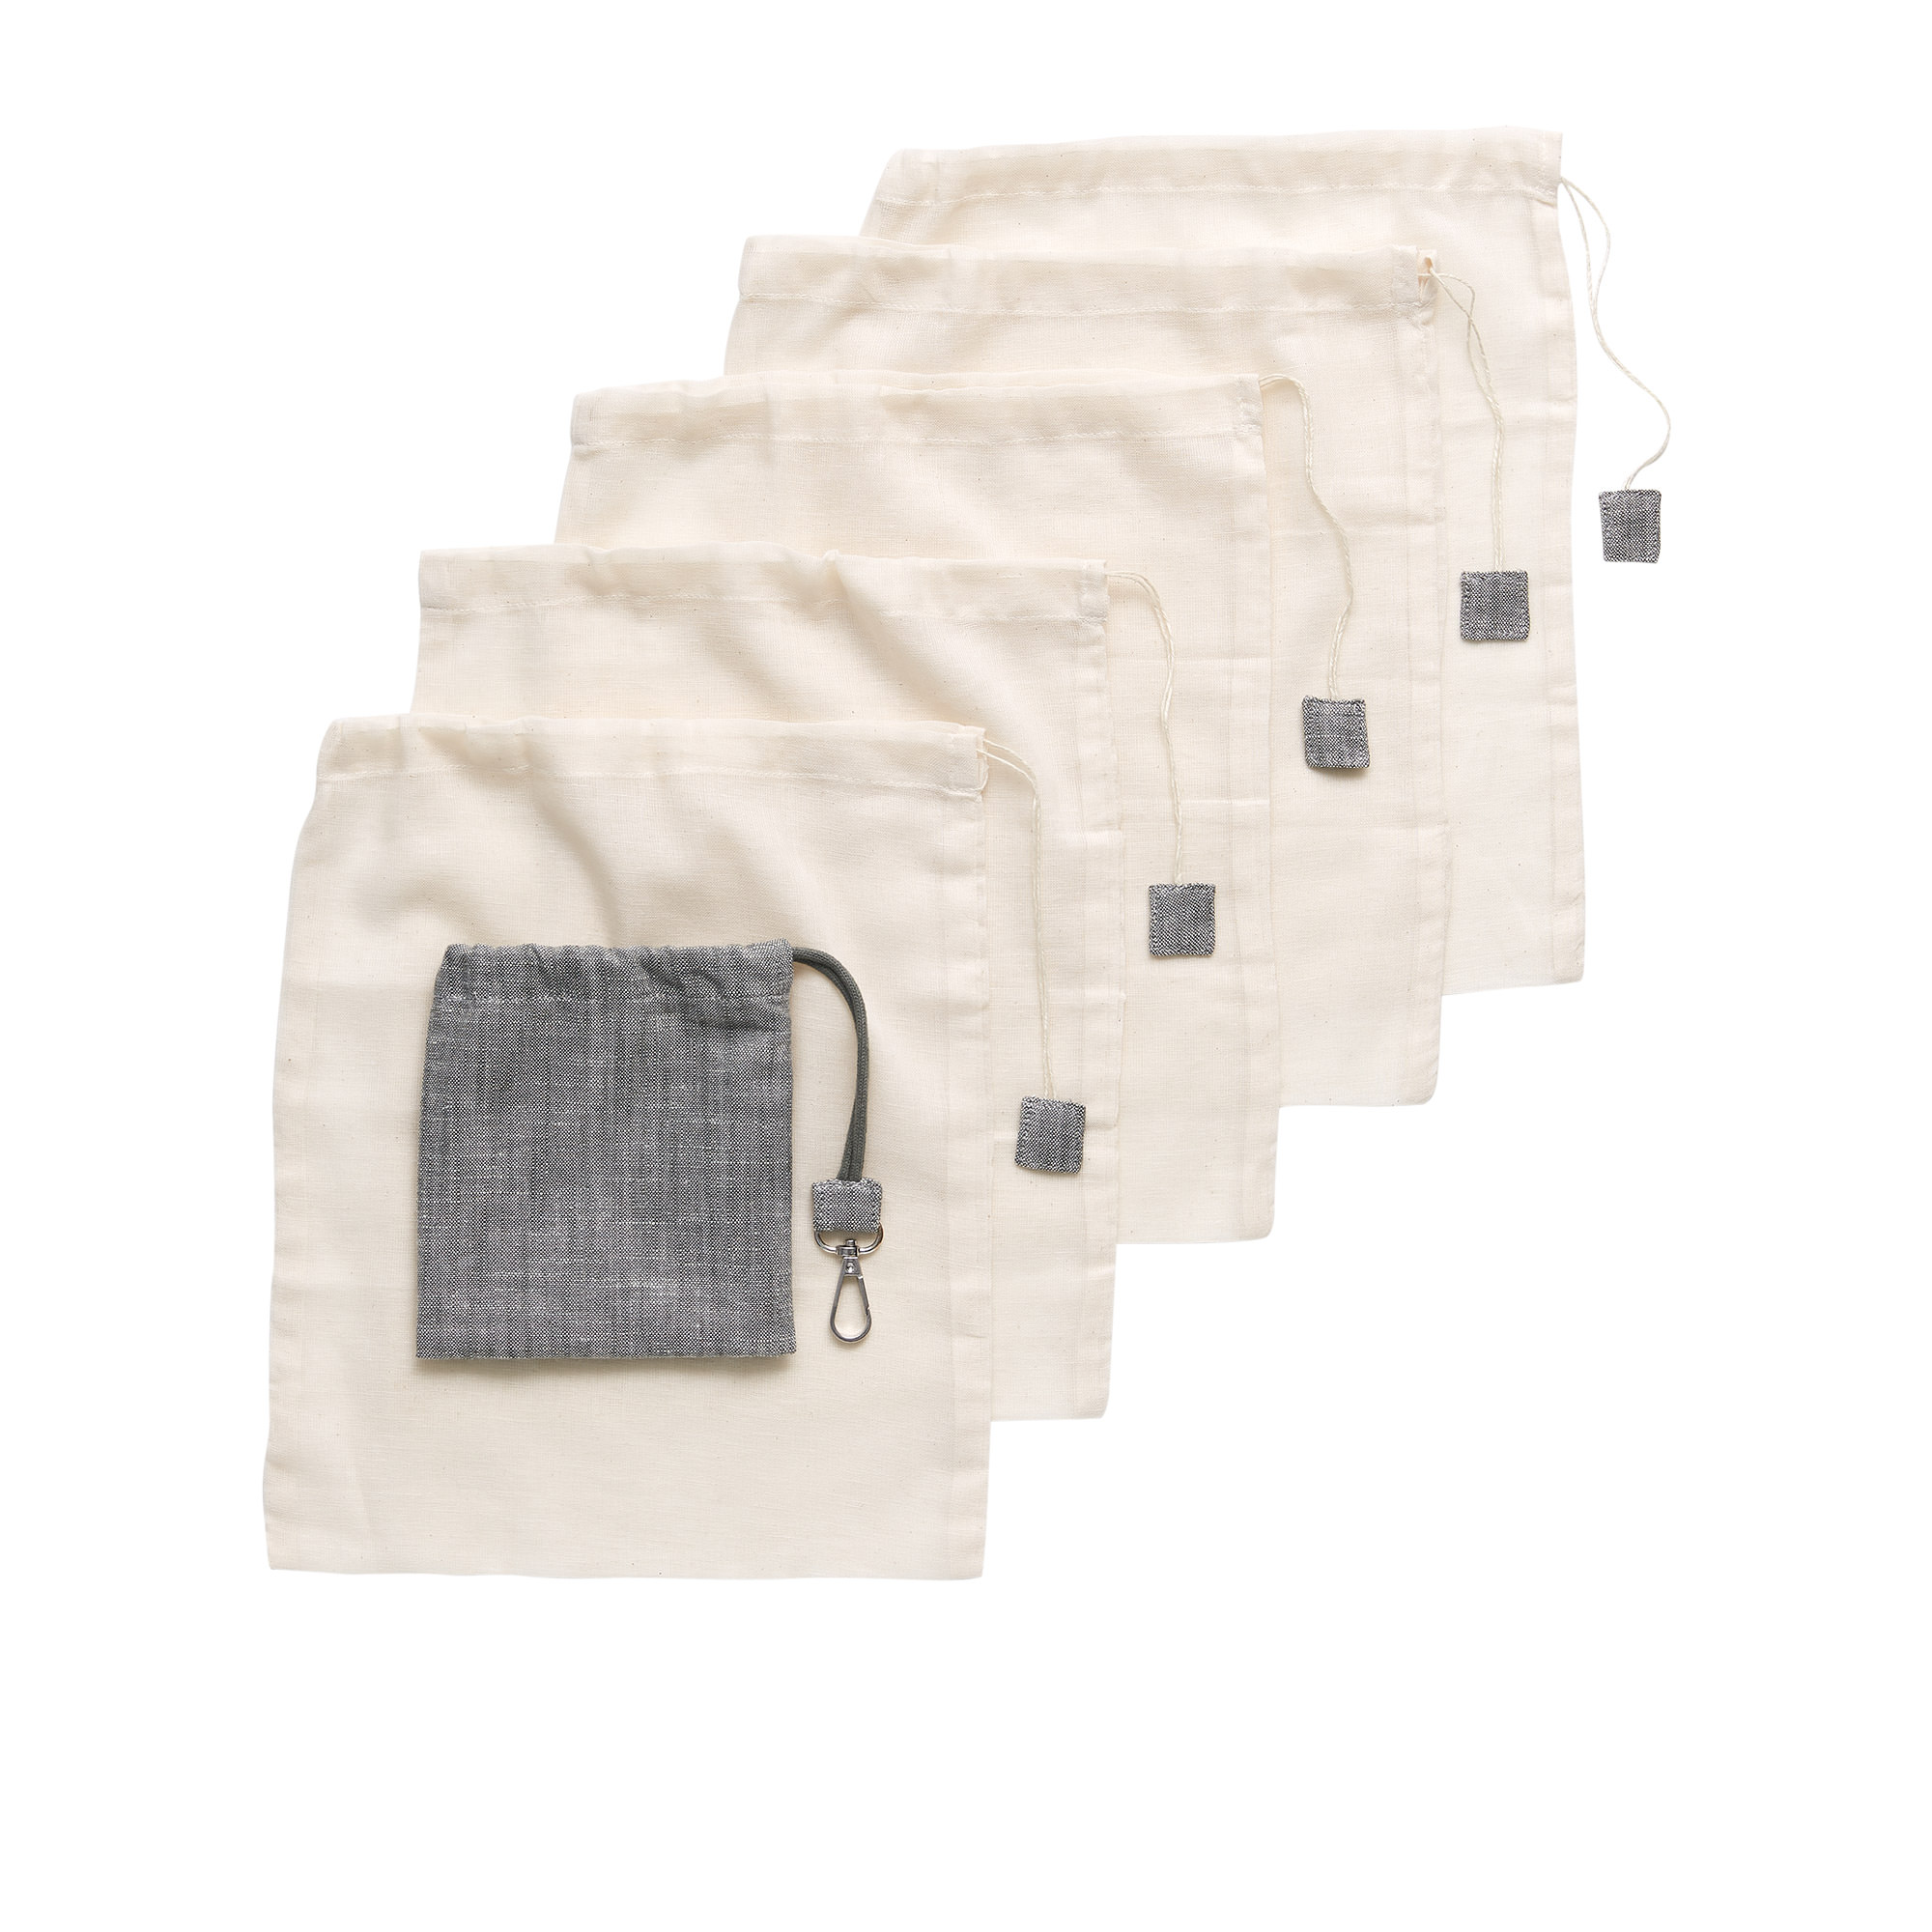 Salisbury & Co Essentials 5pc Mesh Produce Bags Small 30x25cm Natural